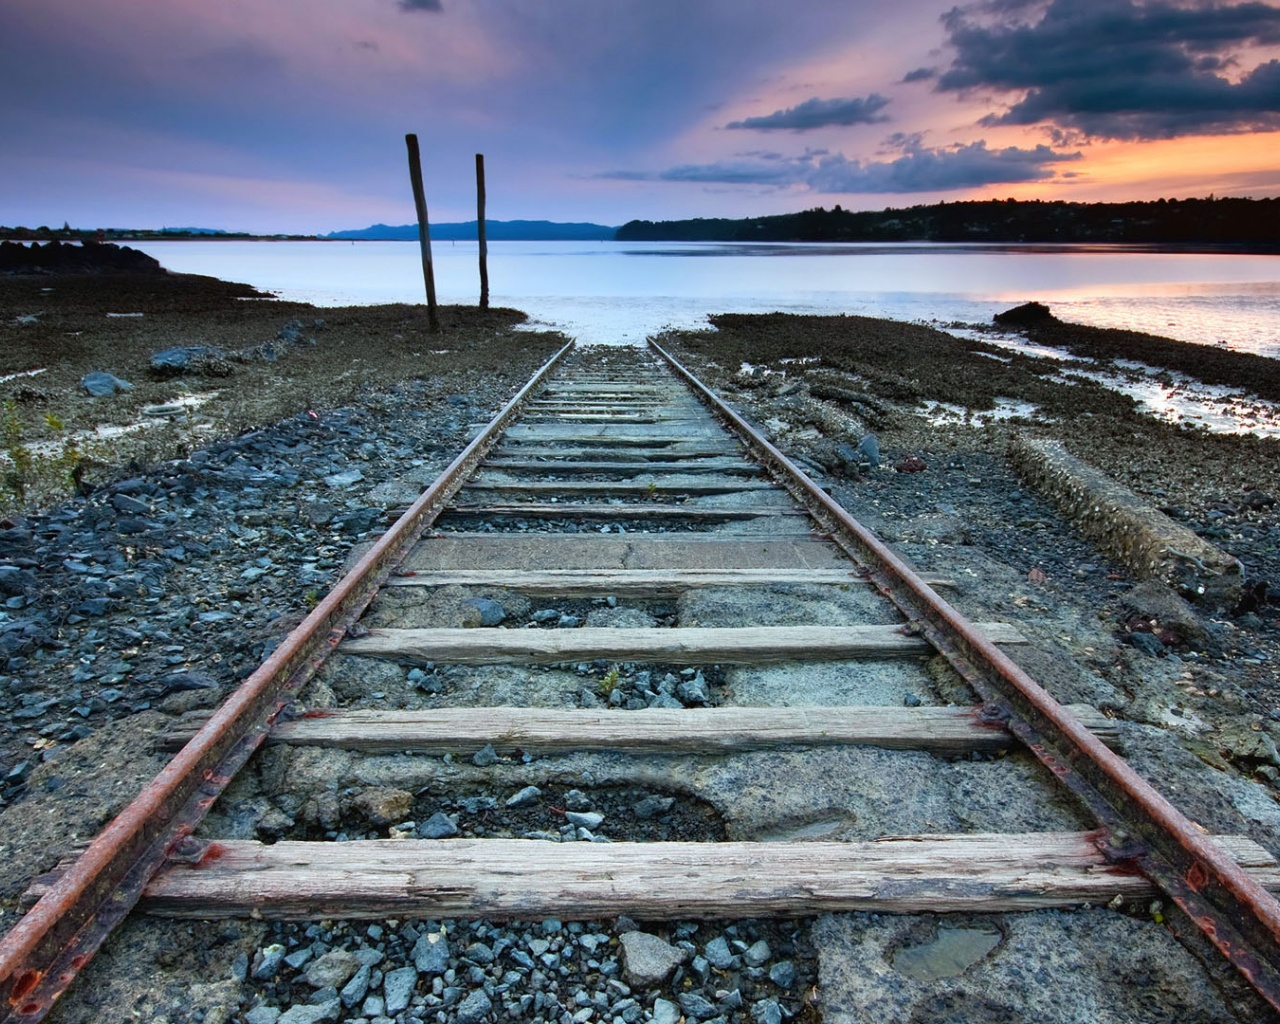 click to free download the wallpaper--Images of Natural Scenes, a Railway Leading to the Peaceful Sea, the Pink Sky, is Looking Good 1280X1024 free wallpaper download